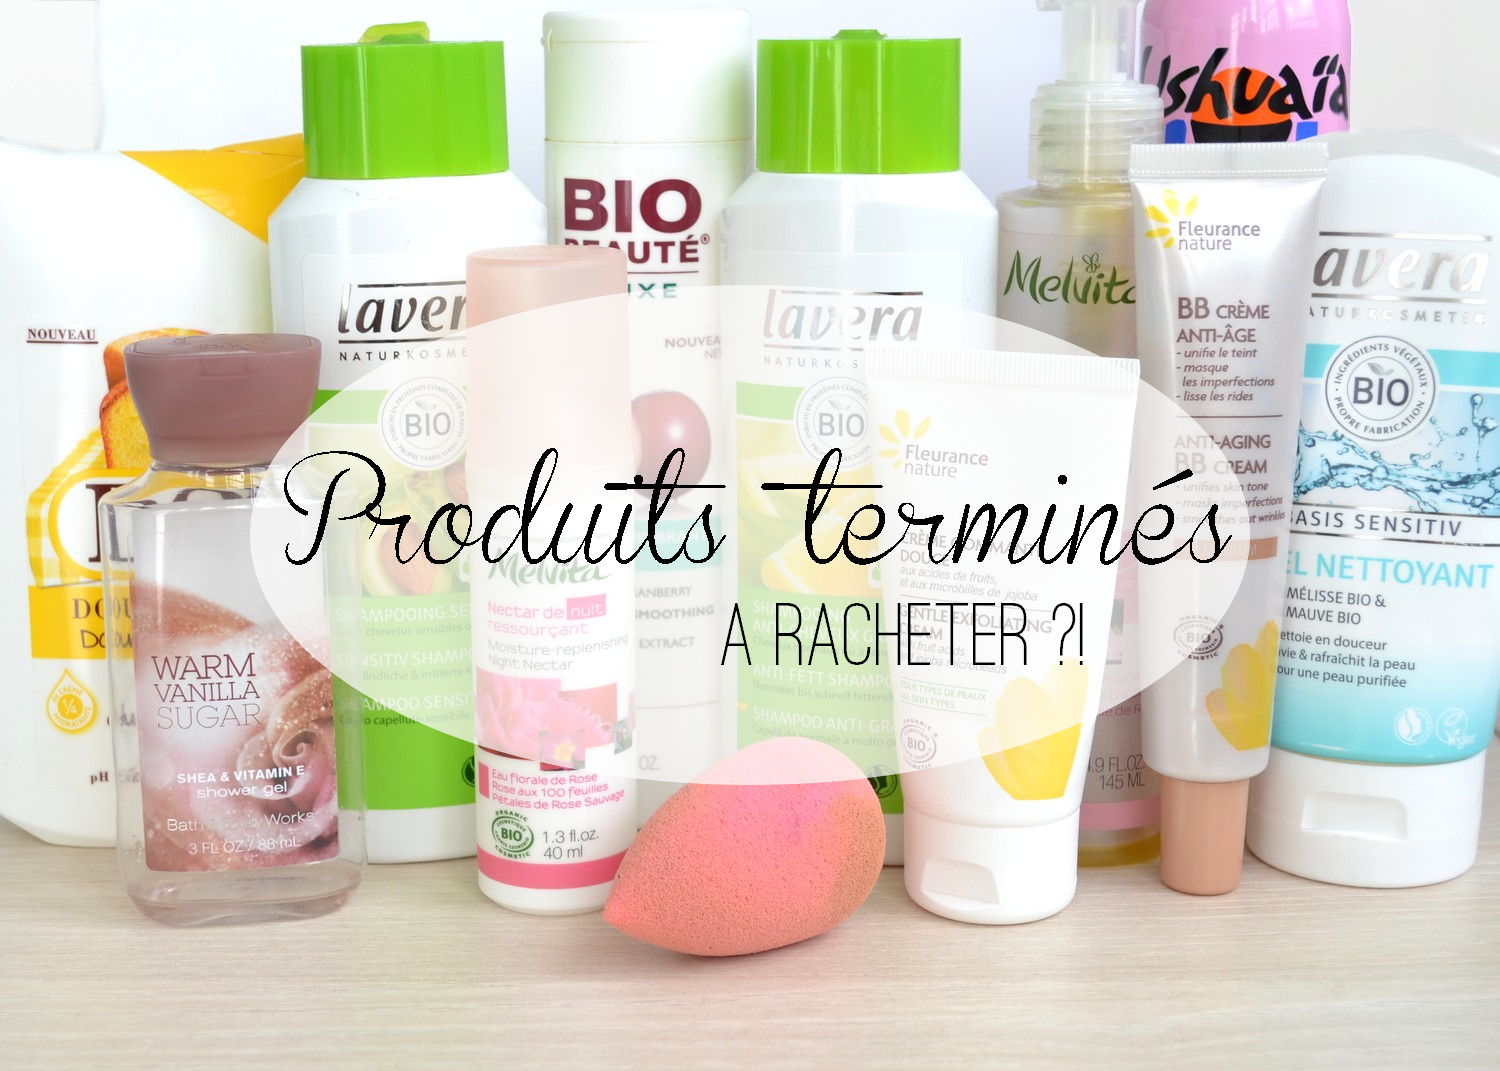 http://www.dreamingsmoothly.com/2016/03/produits-termines-racheter-8.html